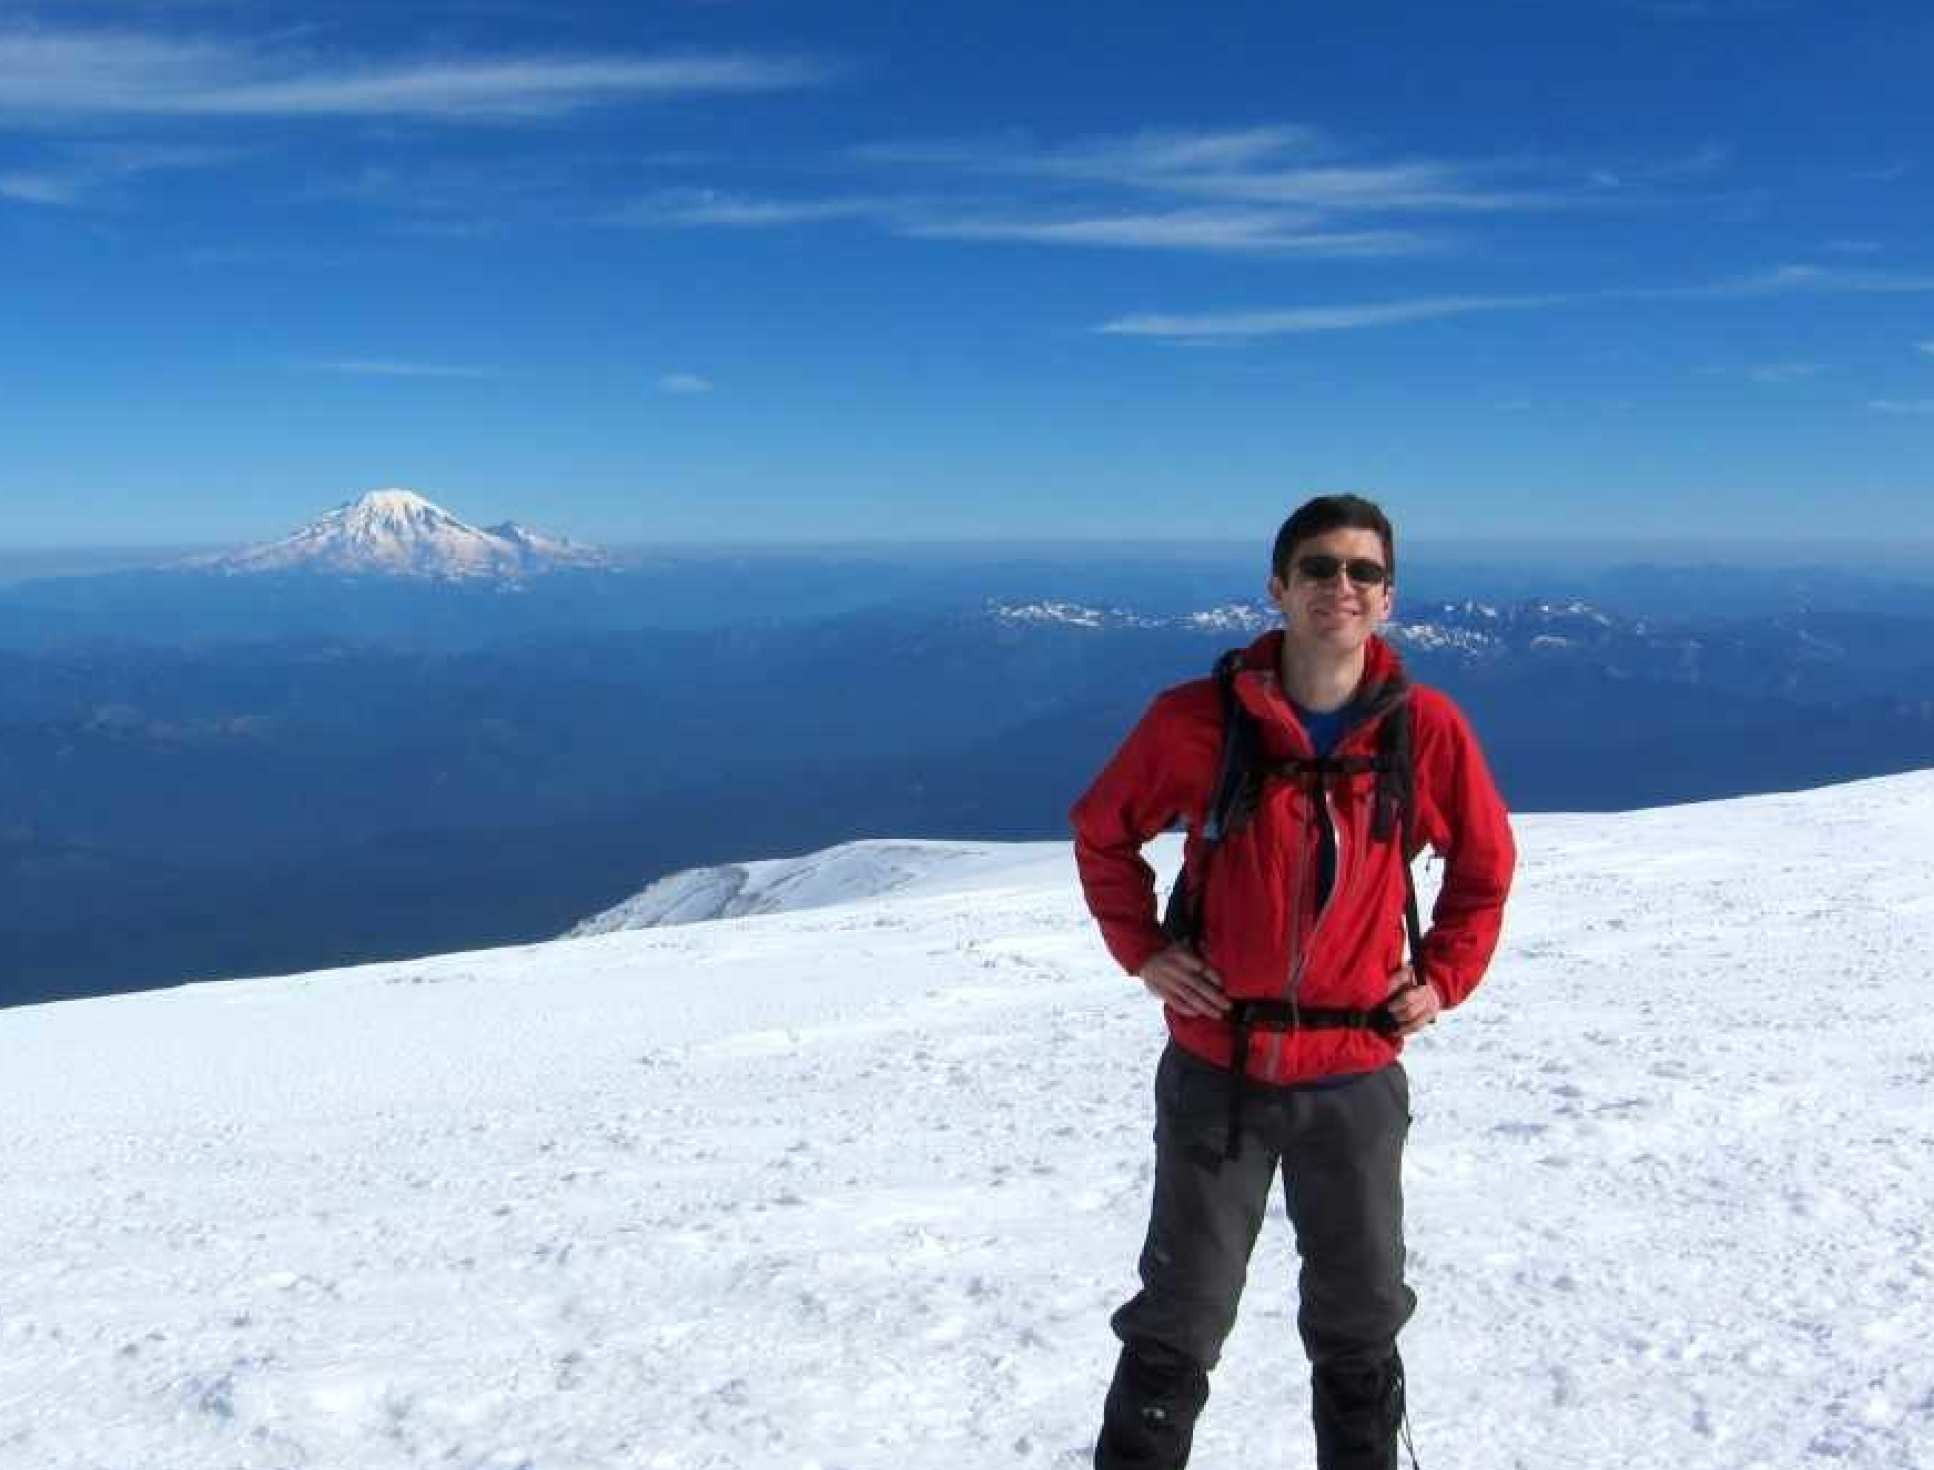 Dr Ceppi on top of Mount Adams, with Mt Rainier in the background